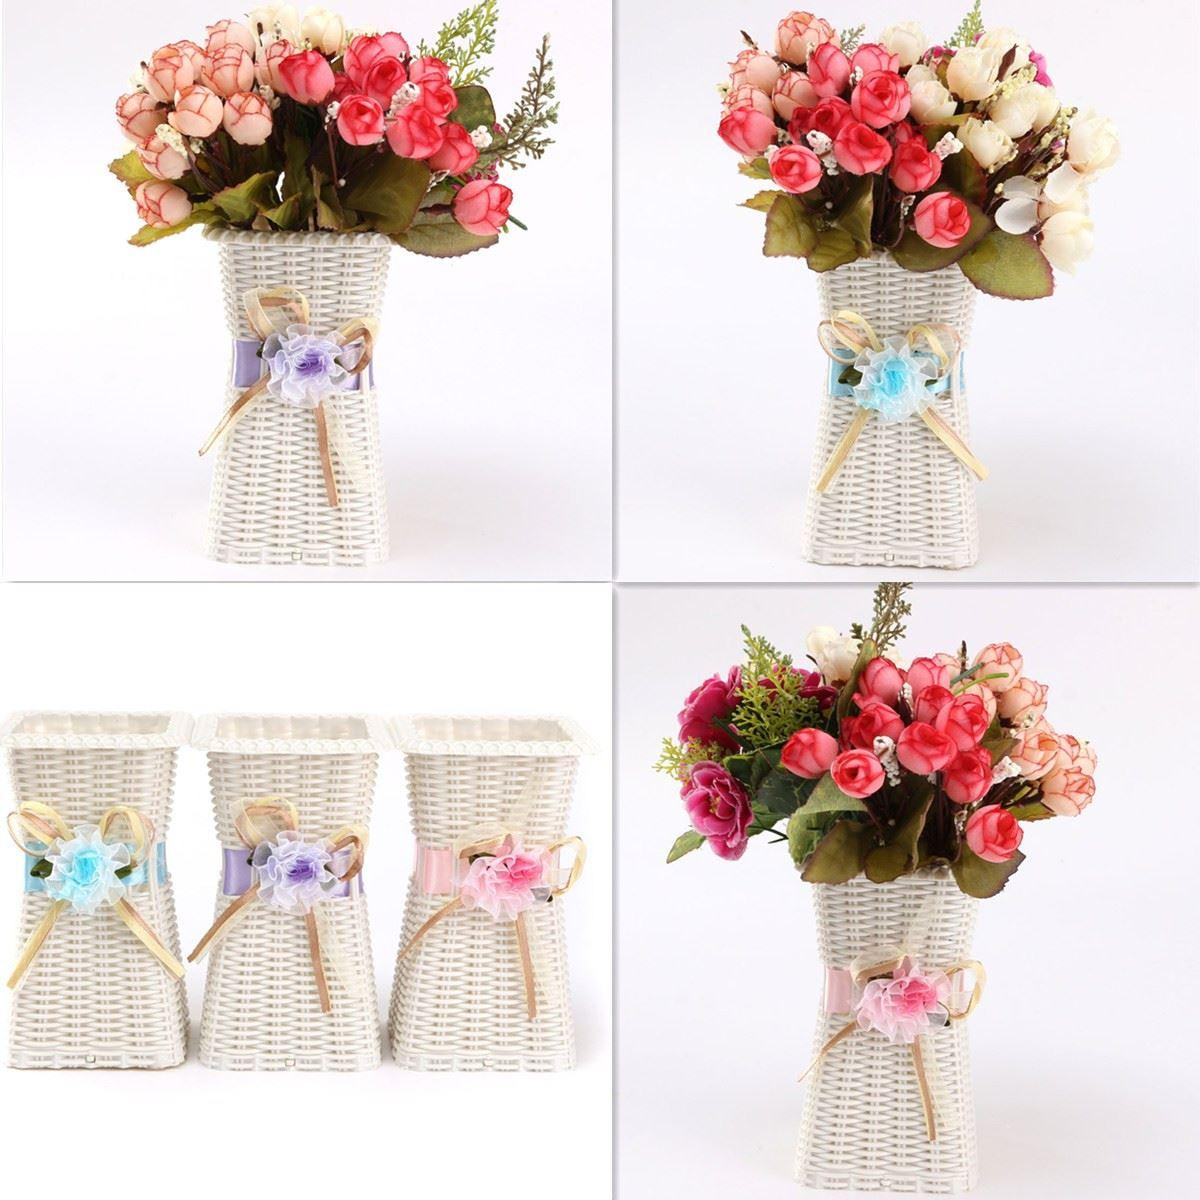 Plastic artificial rattan flower basket rosesfruitscandy storage plastic artificial rattan flower basket rosesfruitscandy storage vase garden wedding party decoration gift square 2018 from wgl2016 1894 dhgate reviewsmspy